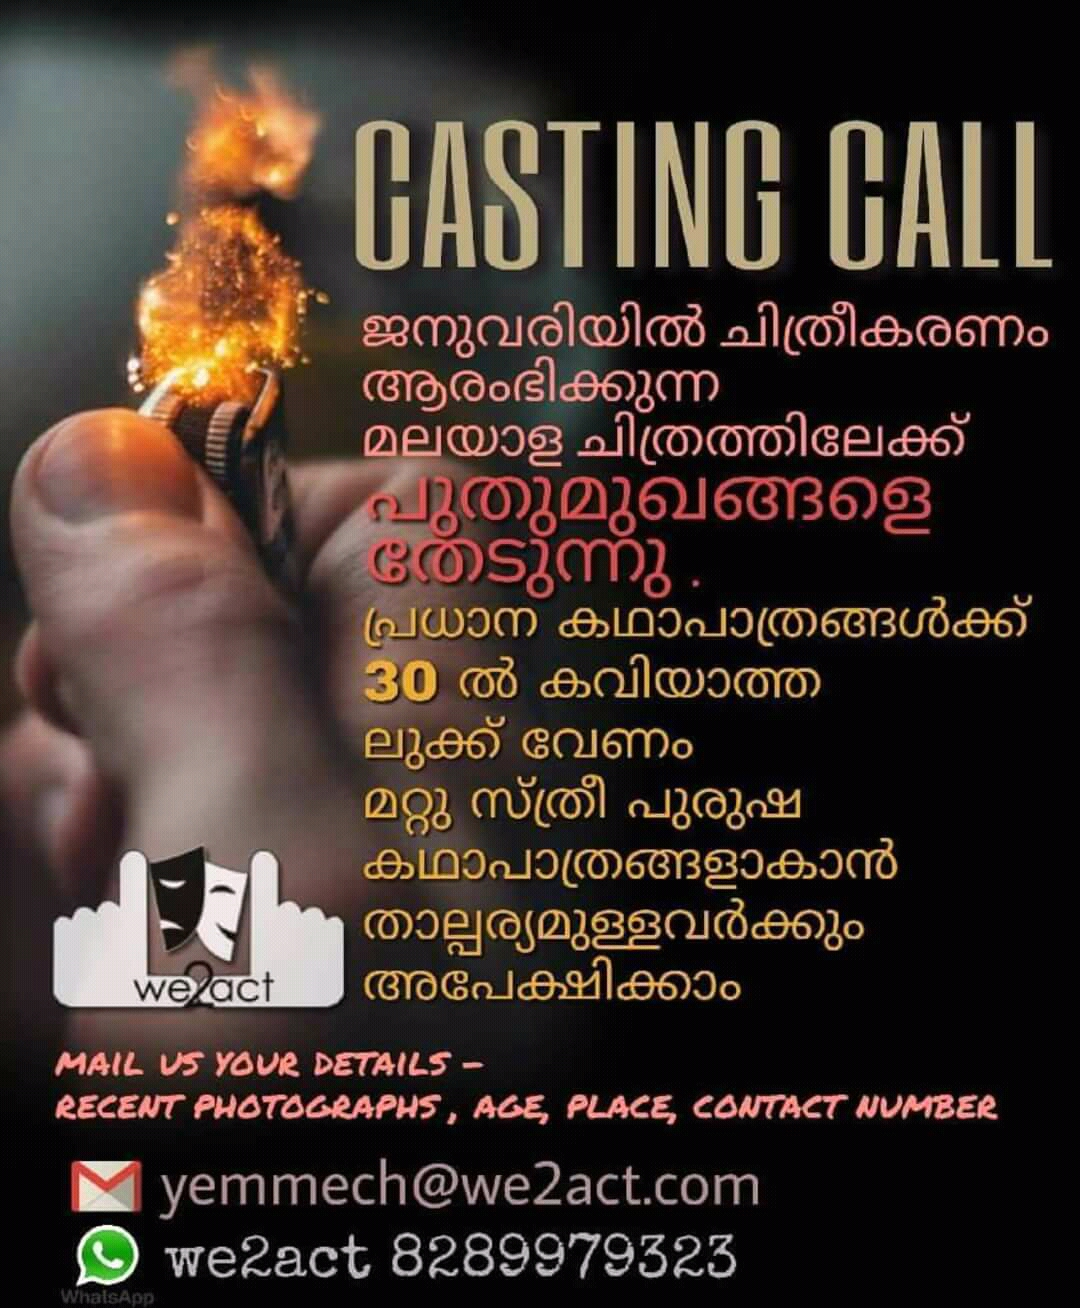 CASTING CALL FOR NEW MALAYALAM MOVIE